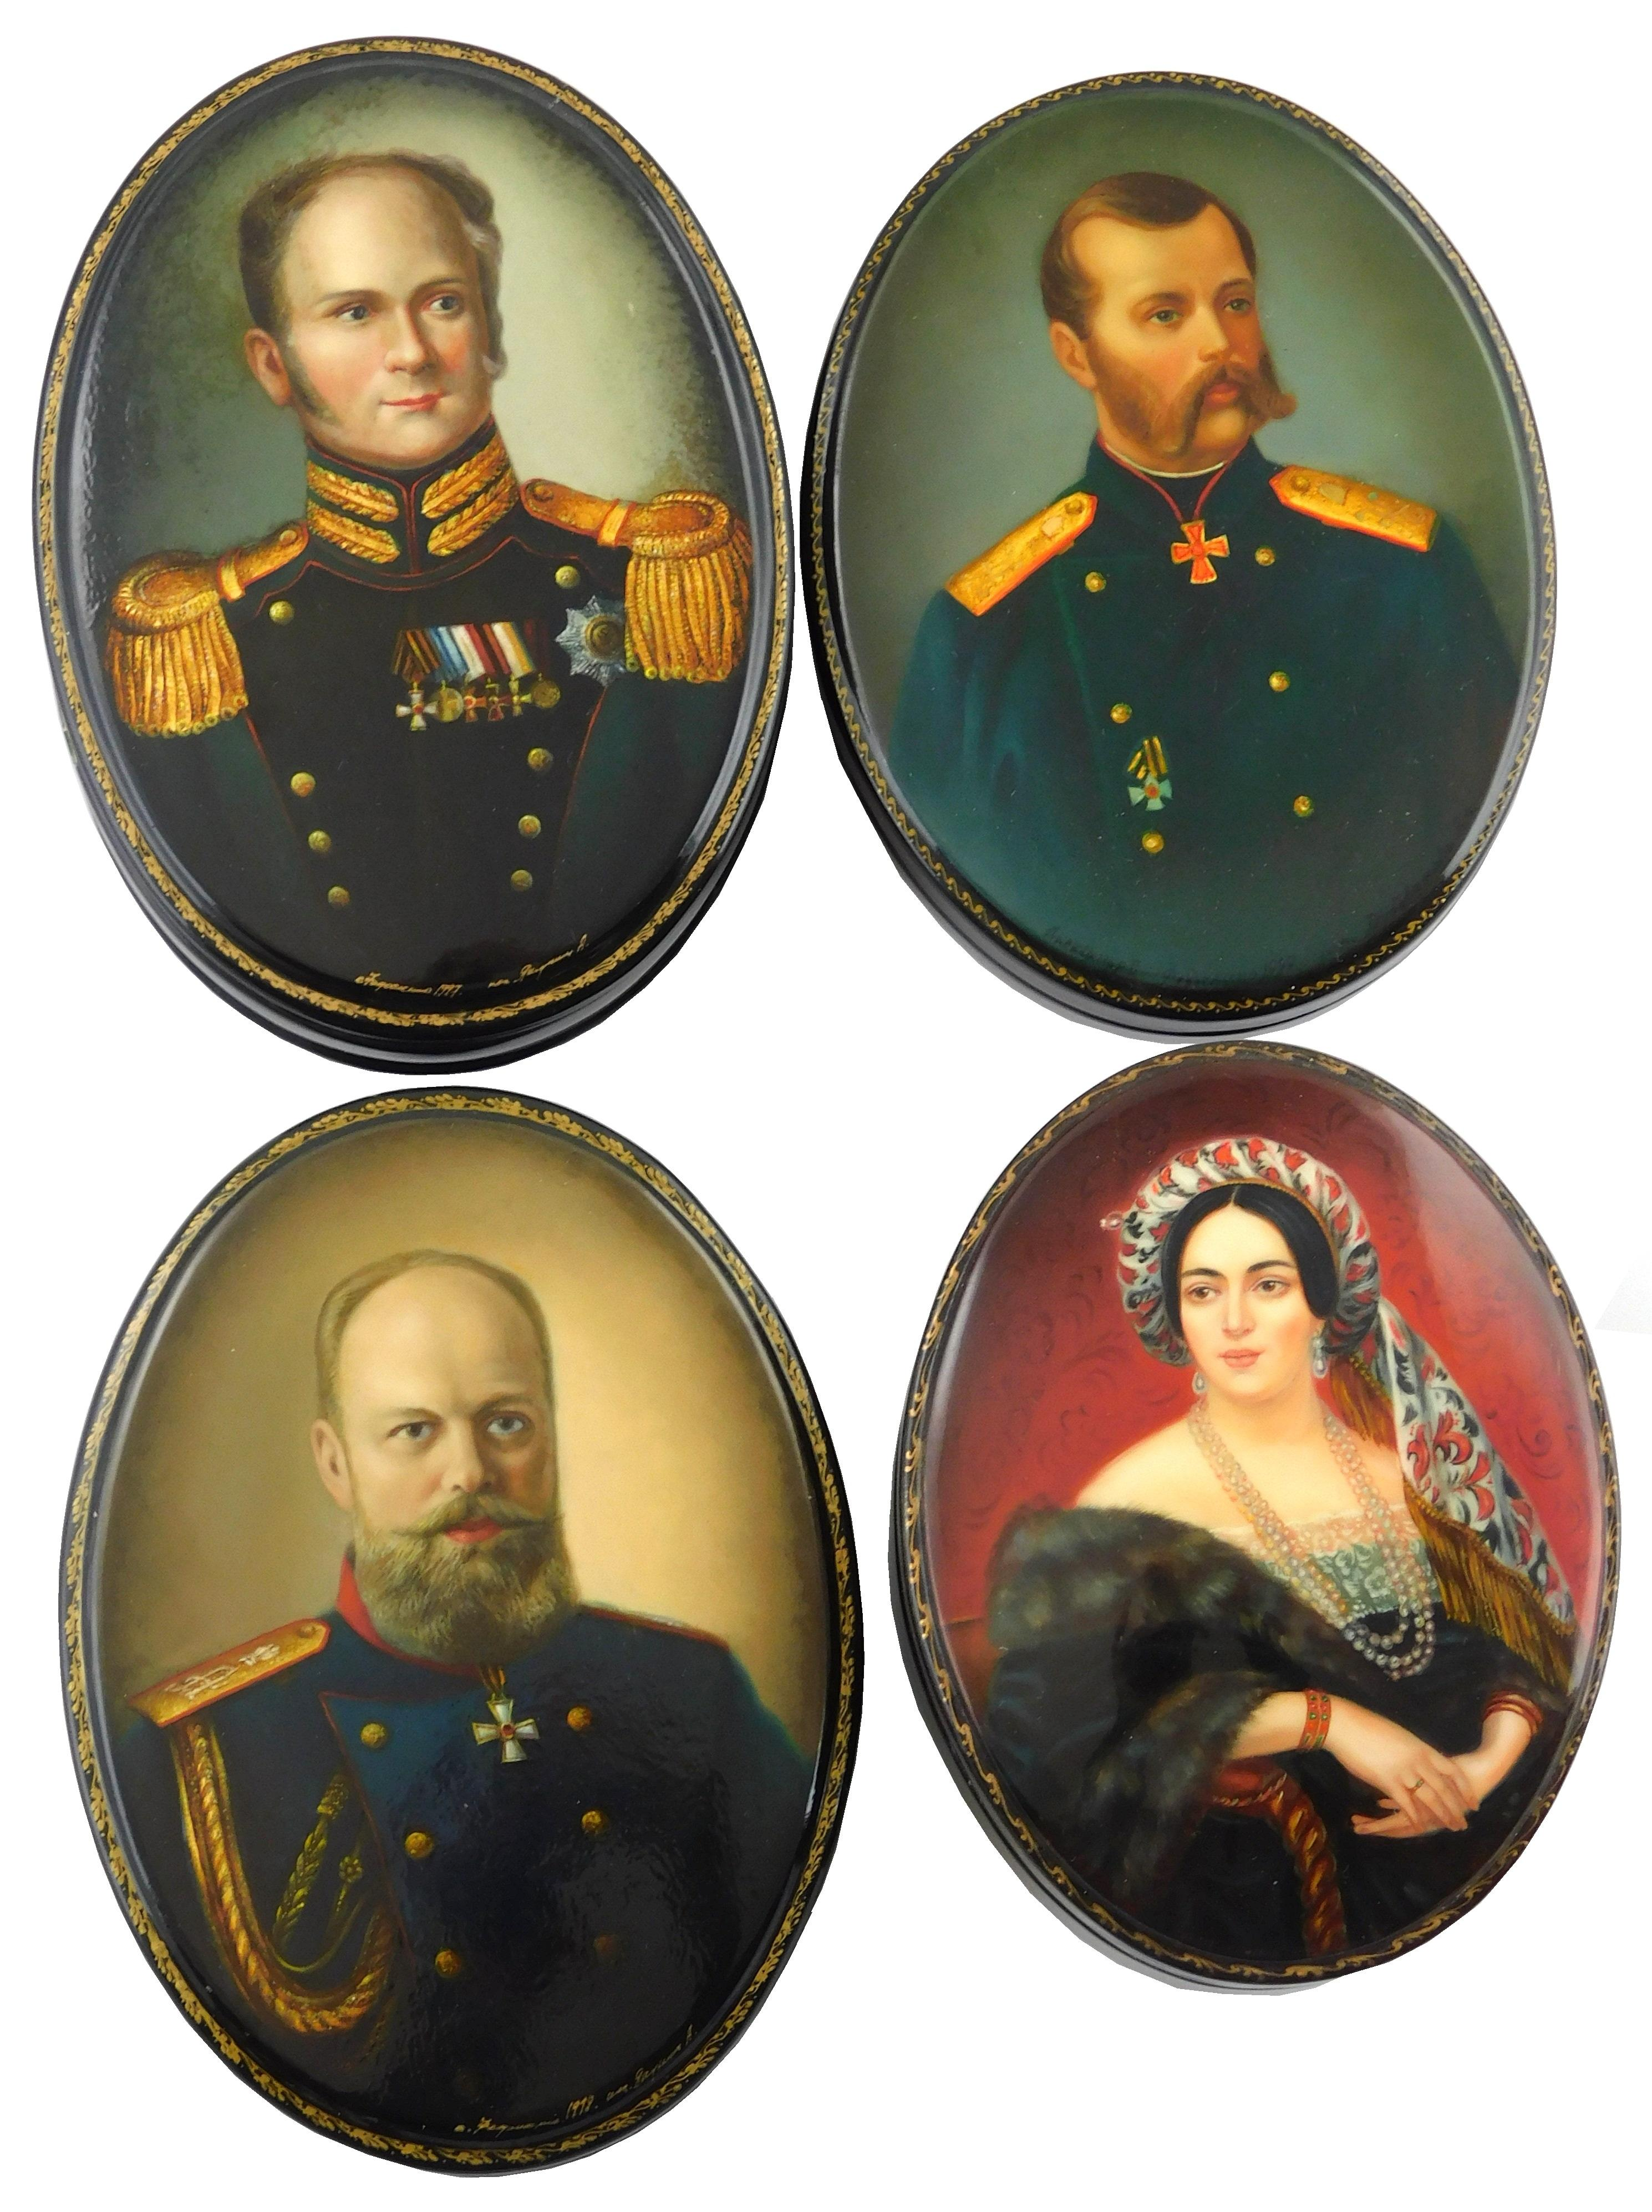 Russian hand-painted lacquer boxes, group of four royal portraits: Alexander I, II & III, all three in military-style coats, depicte...